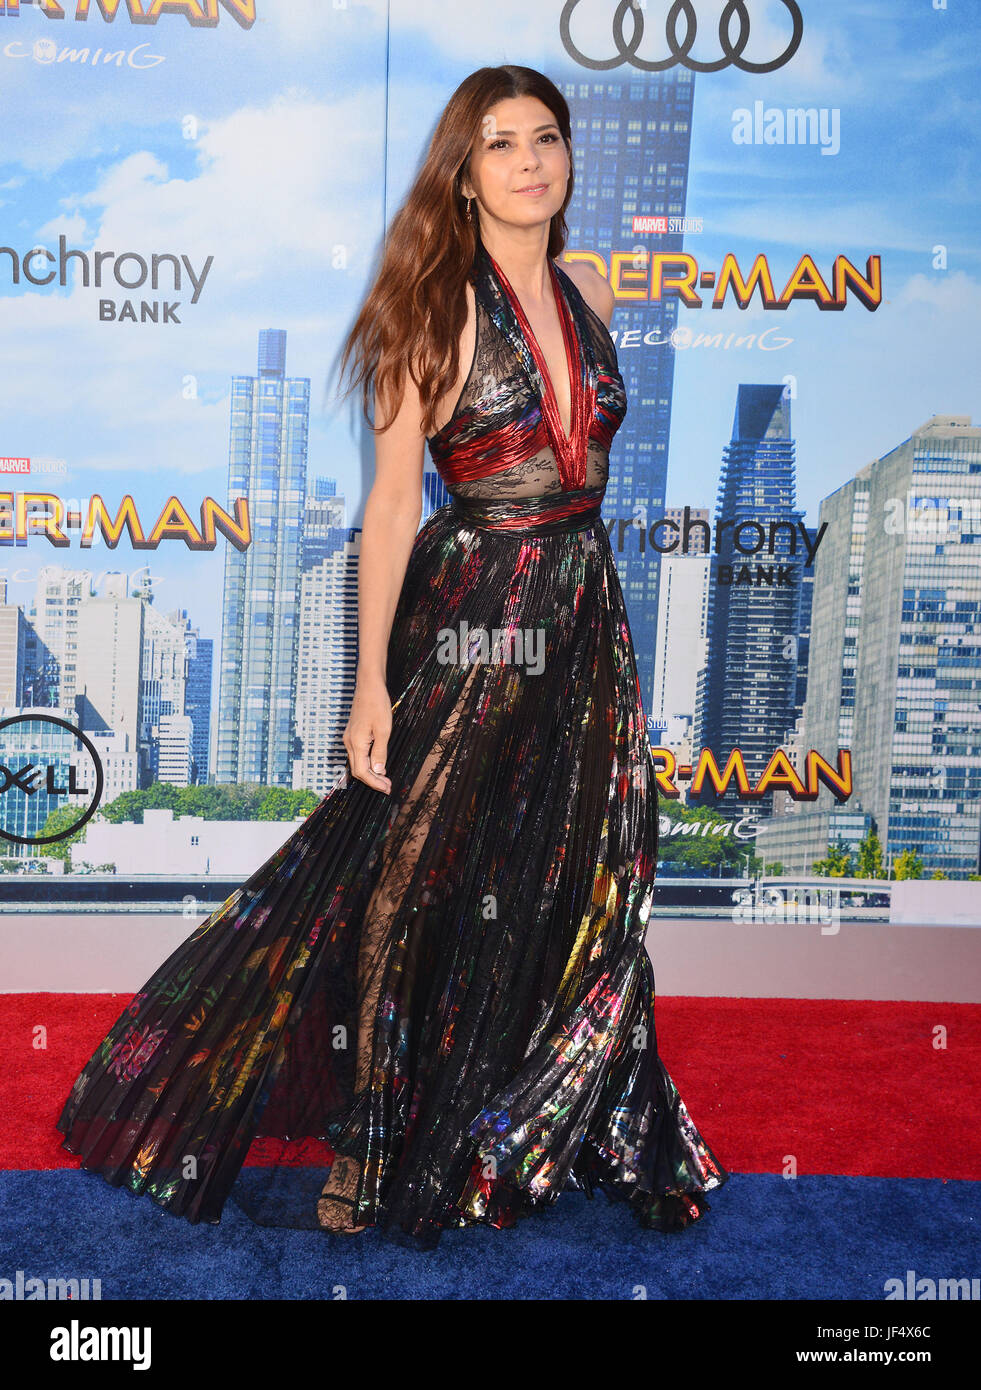 Hollywood, California, USA. 28th June, 2017. Marisa Tomei 024 arrives at the Premiere Of Columbia Pictures' - Stock Image